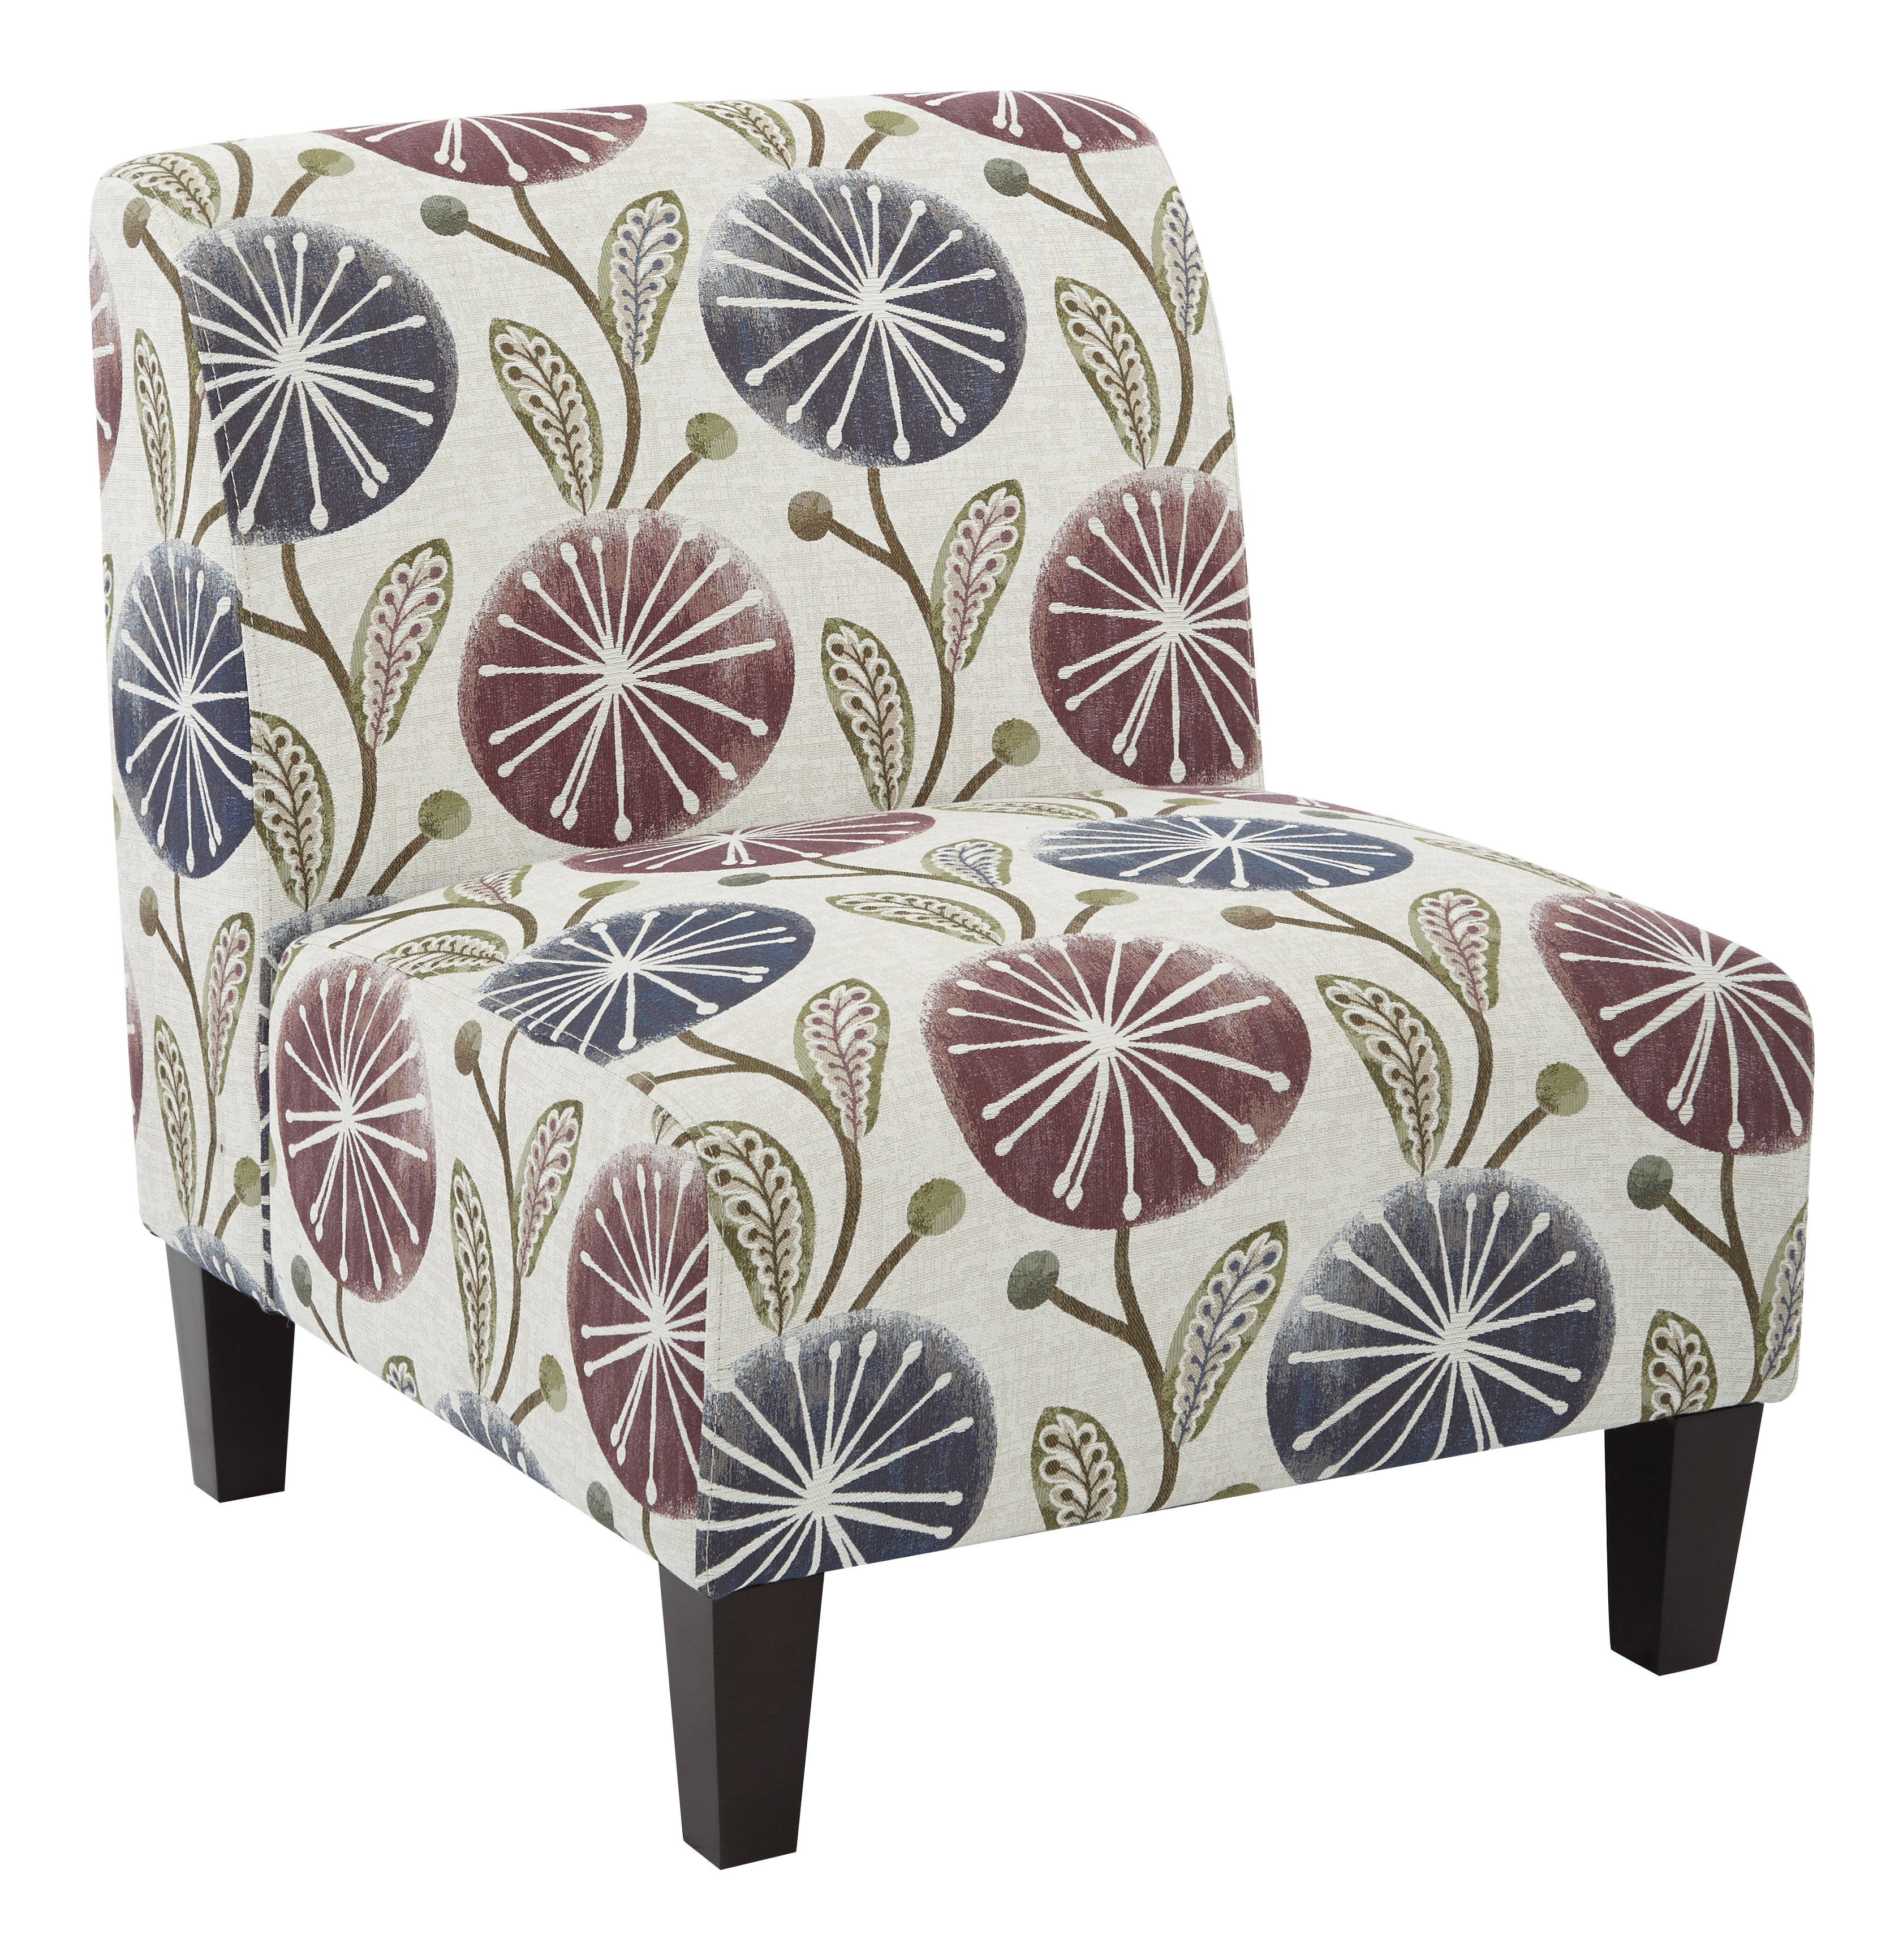 Magnolia Slipper Chair Intended For Magnolia Home Ravel Linen Sofa Chairs (Image 20 of 25)